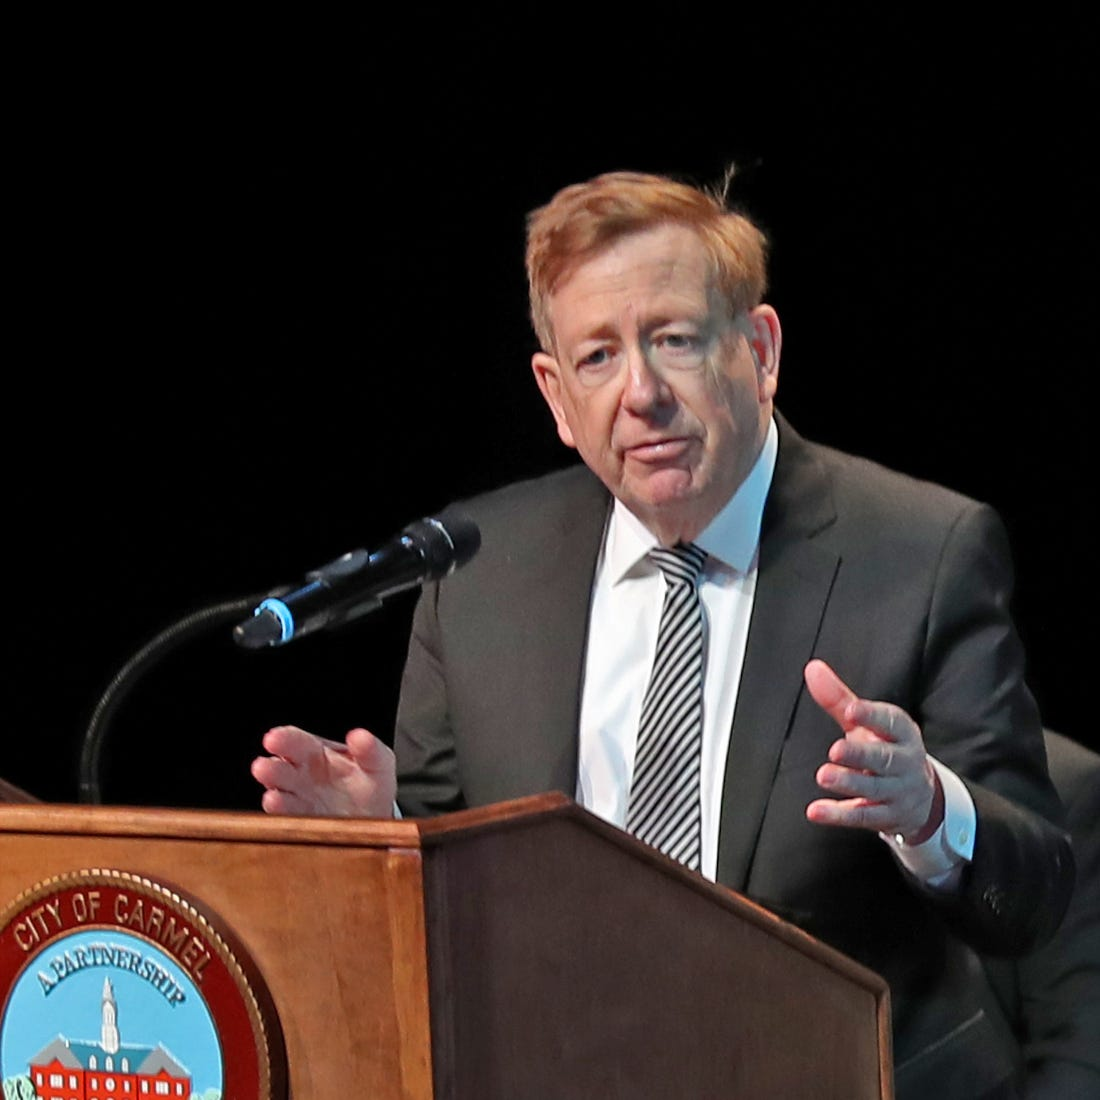 Democrats plan to challenge Jim Brainard for his Carmel mayor seat this fall